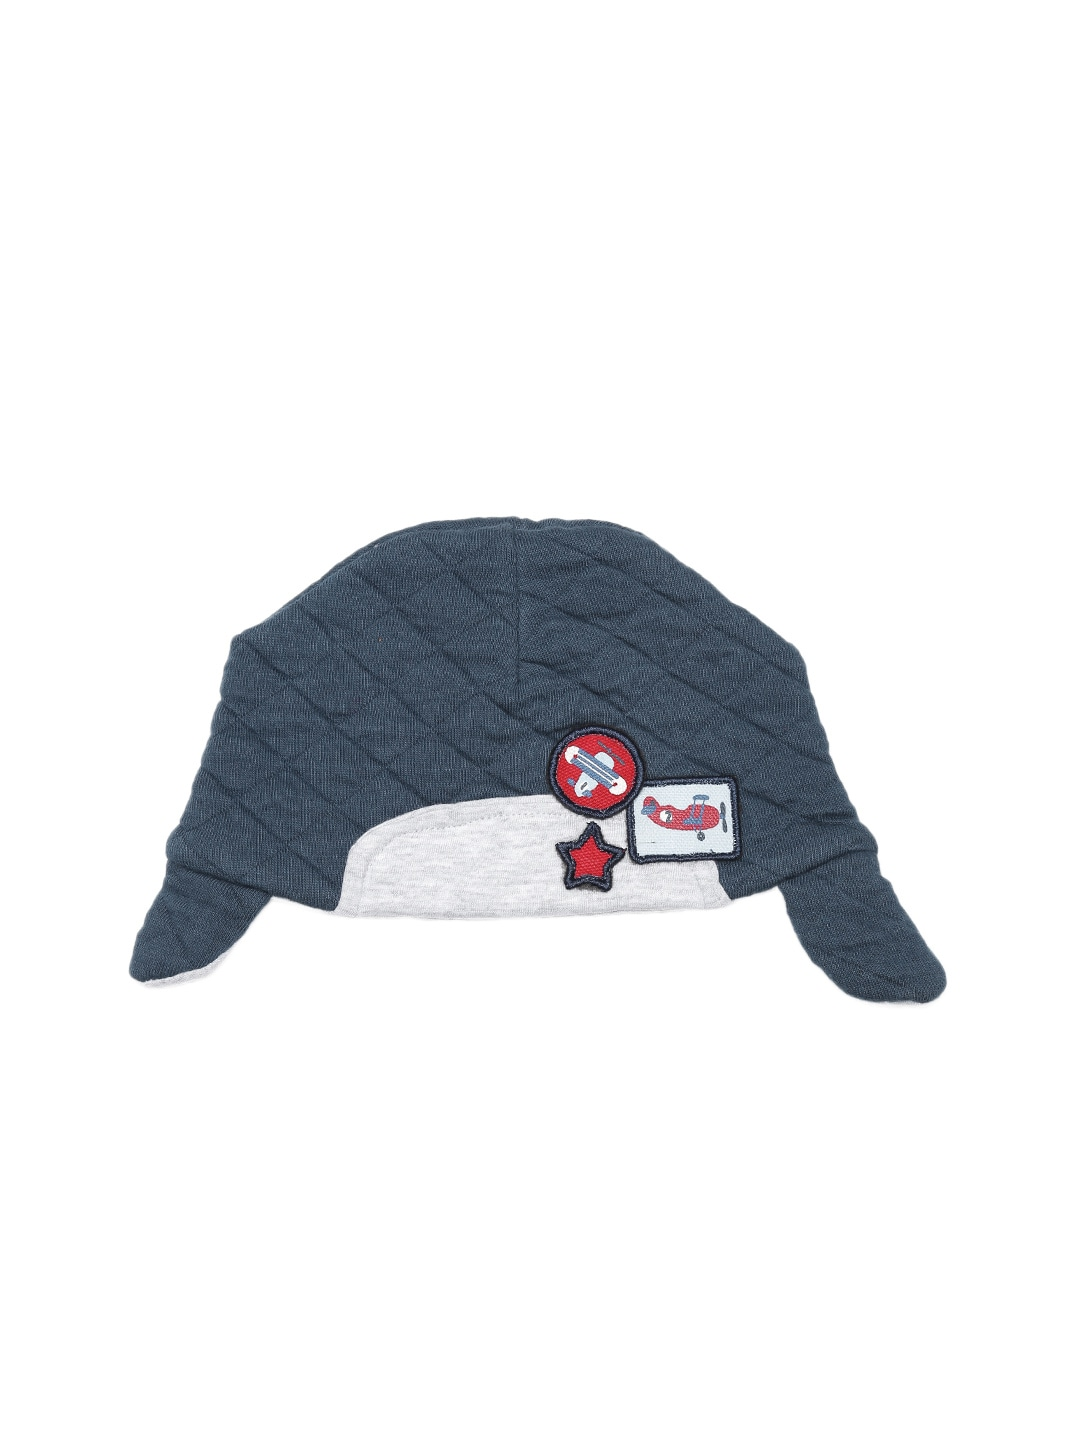 mothercare Boys Navy Quilted Cap